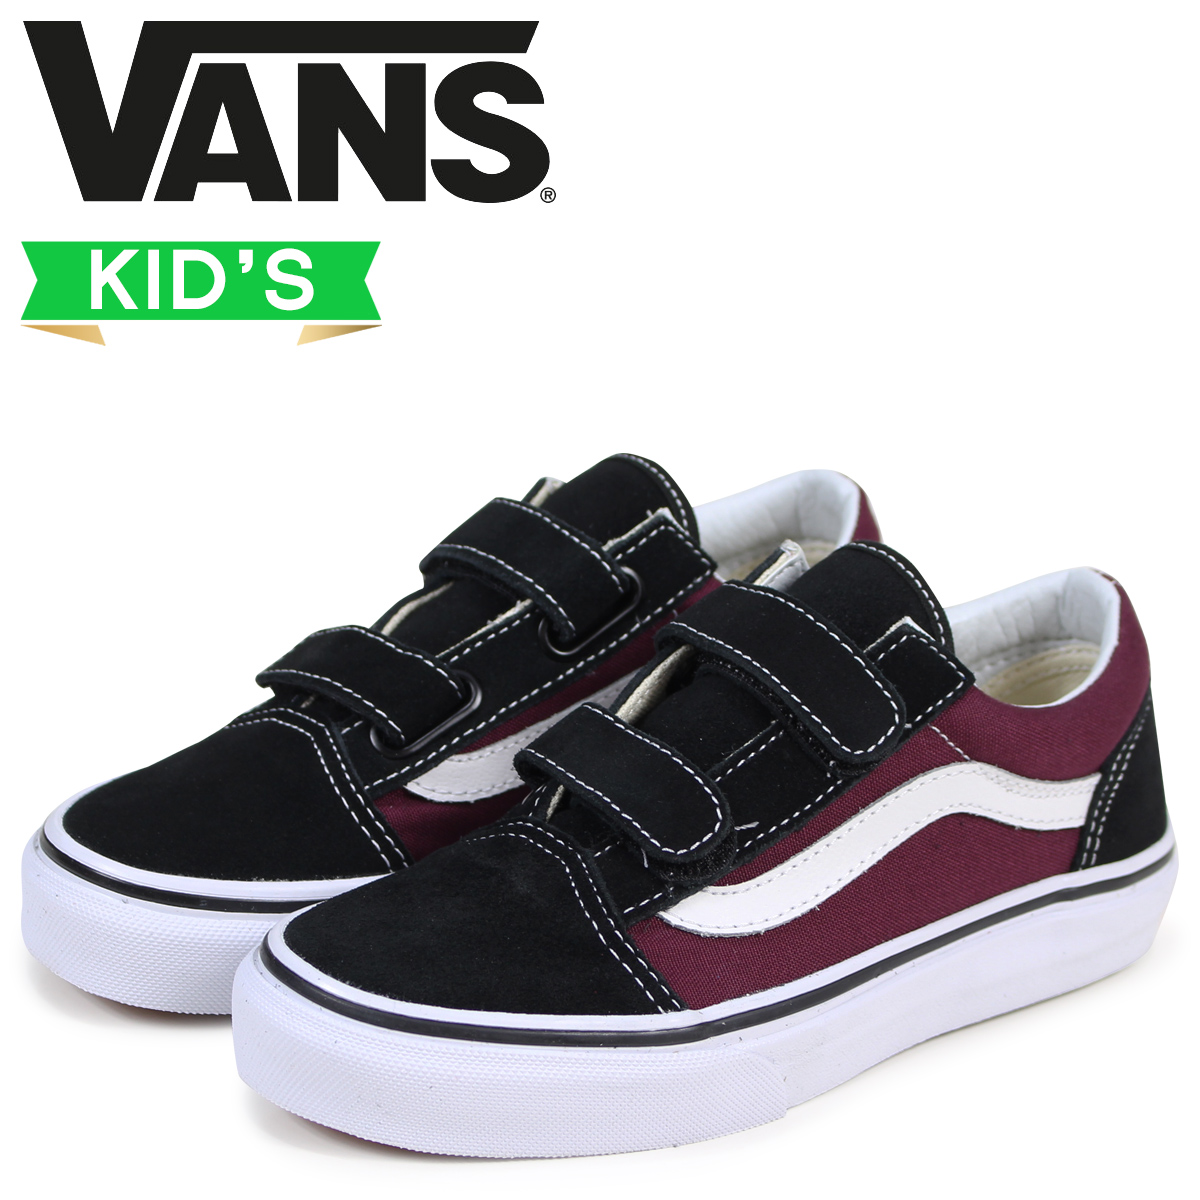 41e4d056f5 Vans old school kids sneakers VANS station wagons OLD SKOOL V VN0A38HDQ7J  black  3 15 Shinnyu load